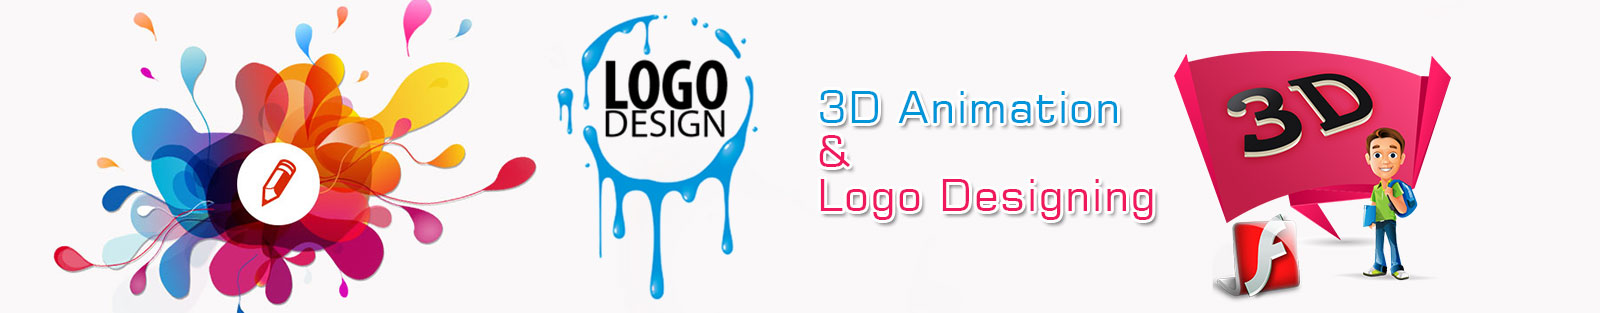 3D animation logo designing services